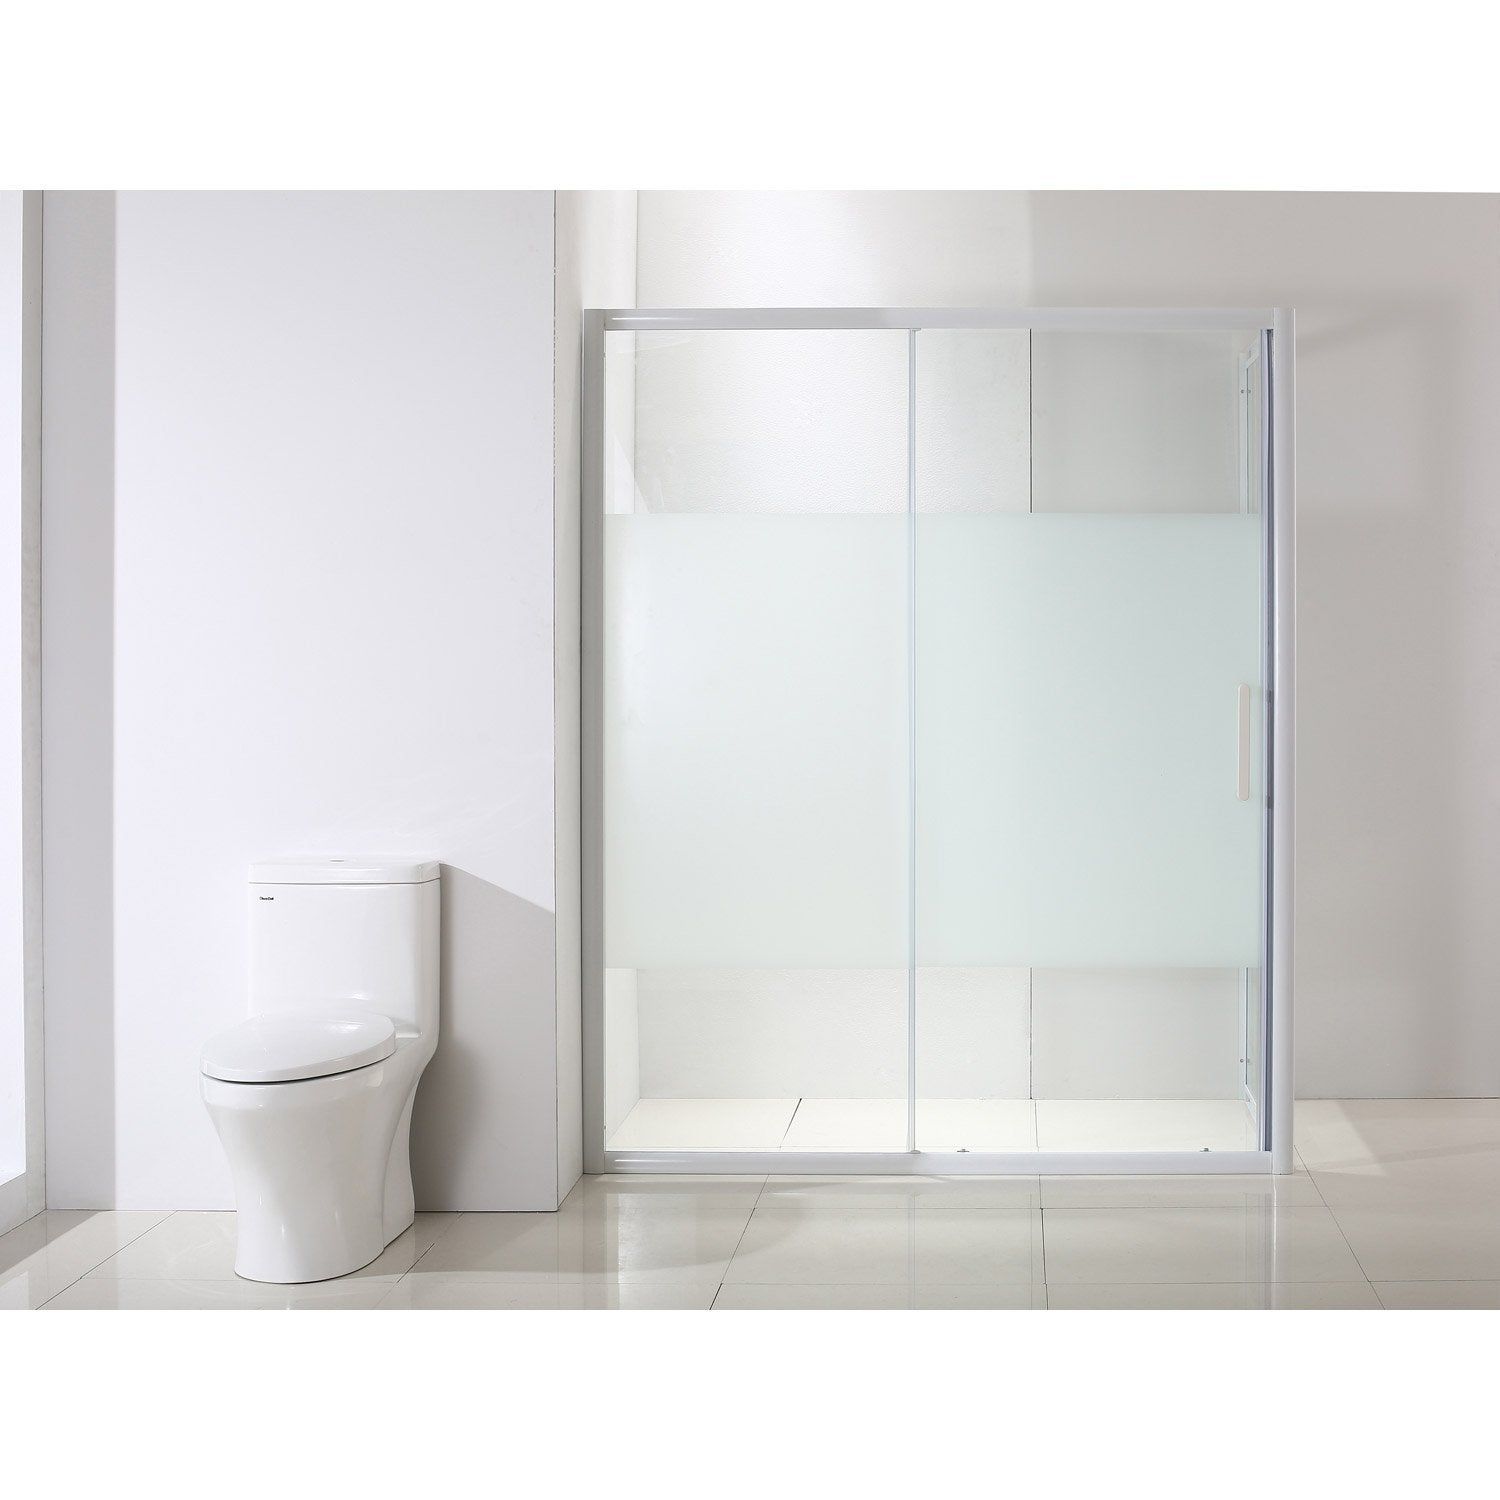 Porte de douche coulissante 140 cm s rigraphi quad for Porte coulissante salon 140 cm